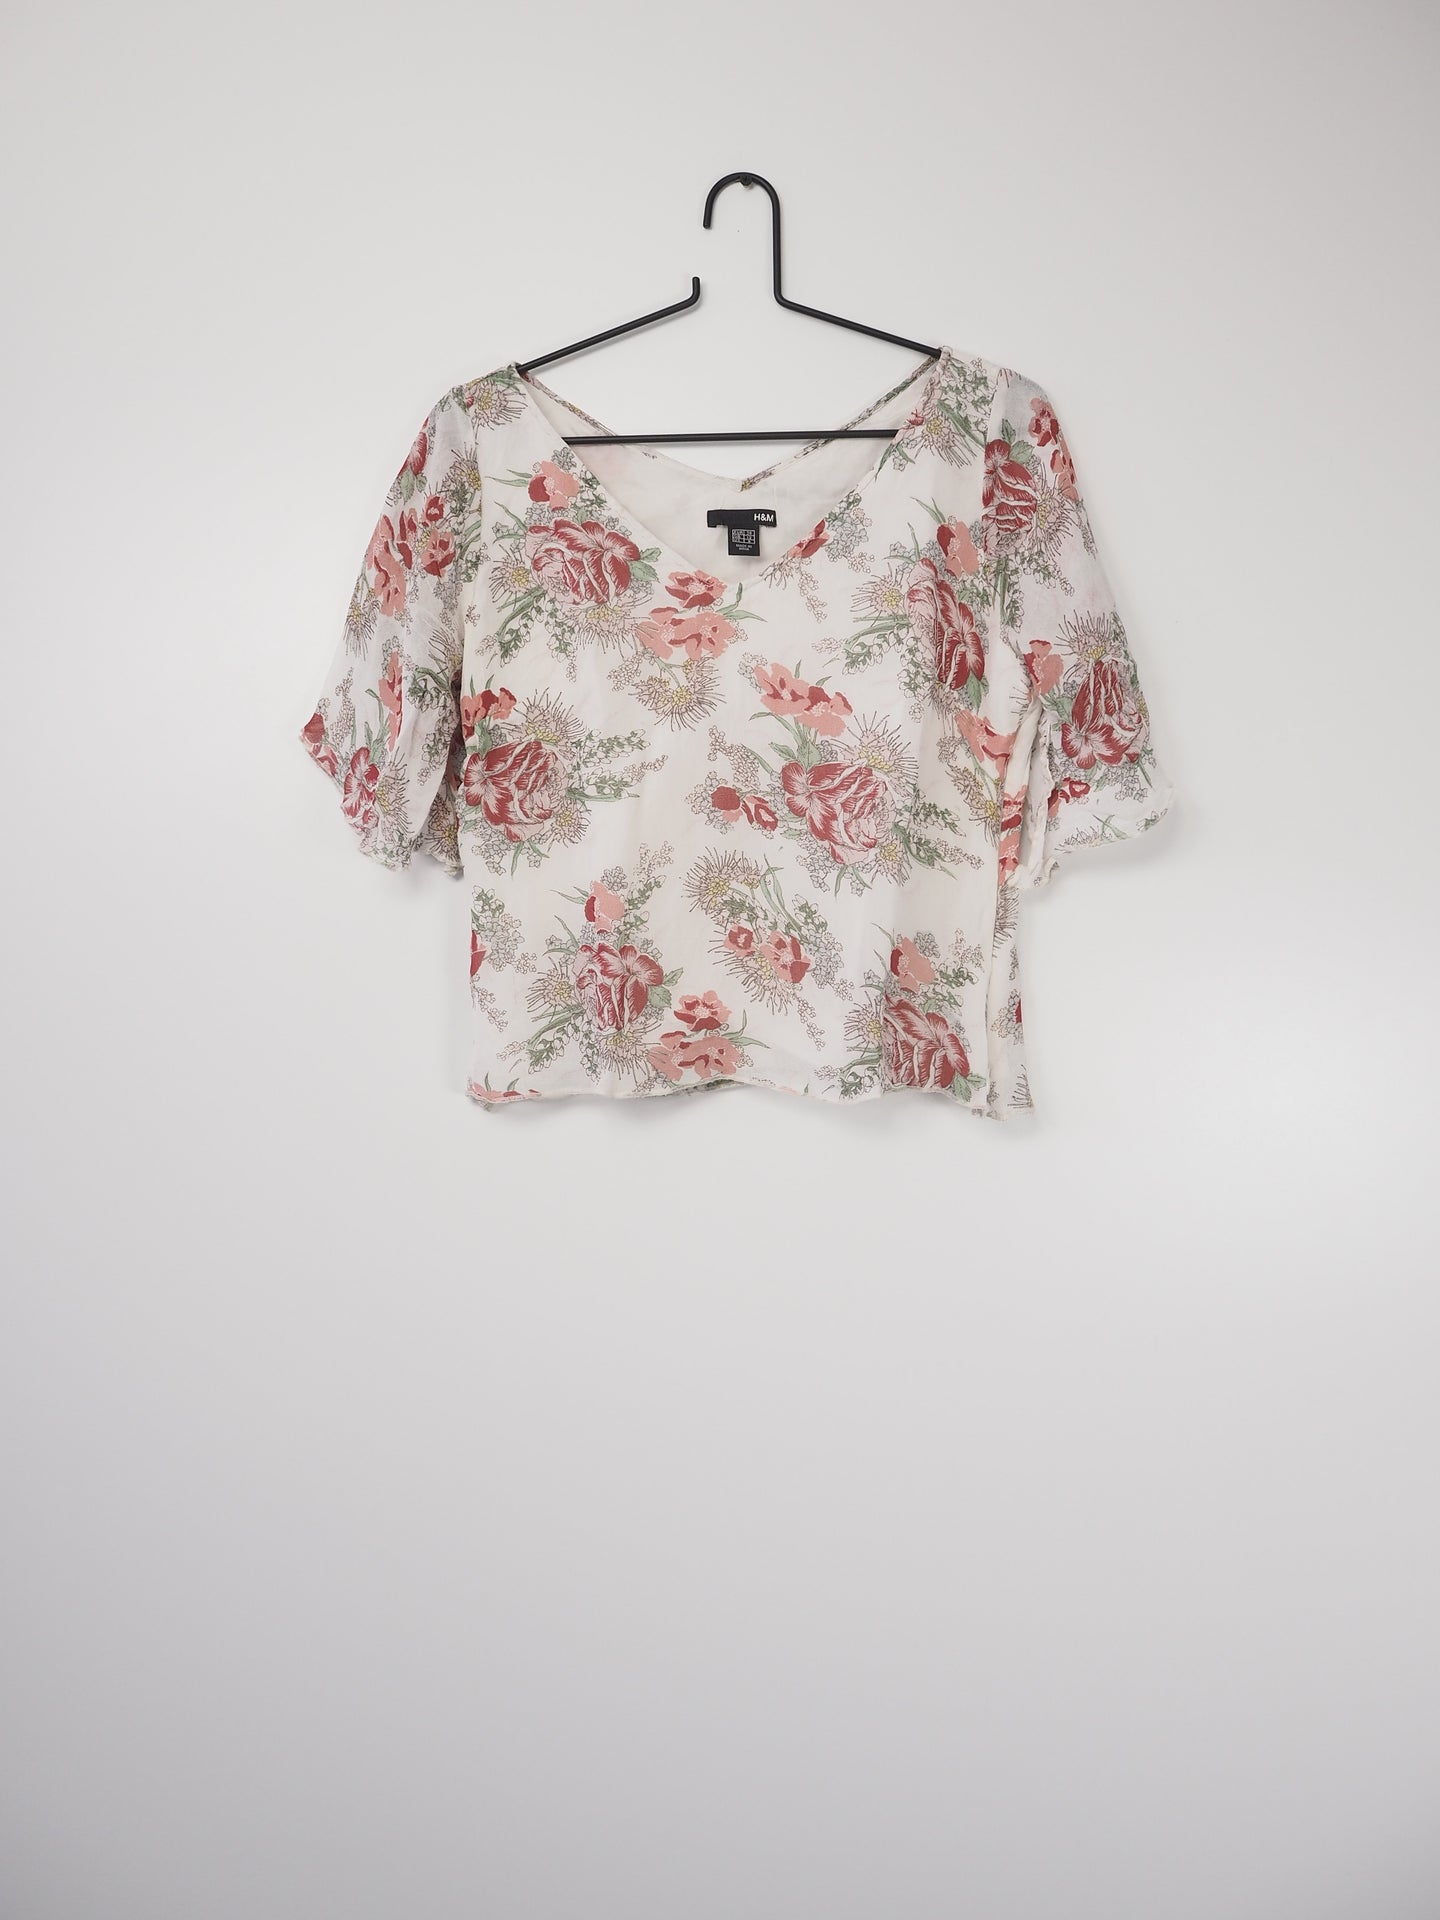 Floaty flower top (H&M)